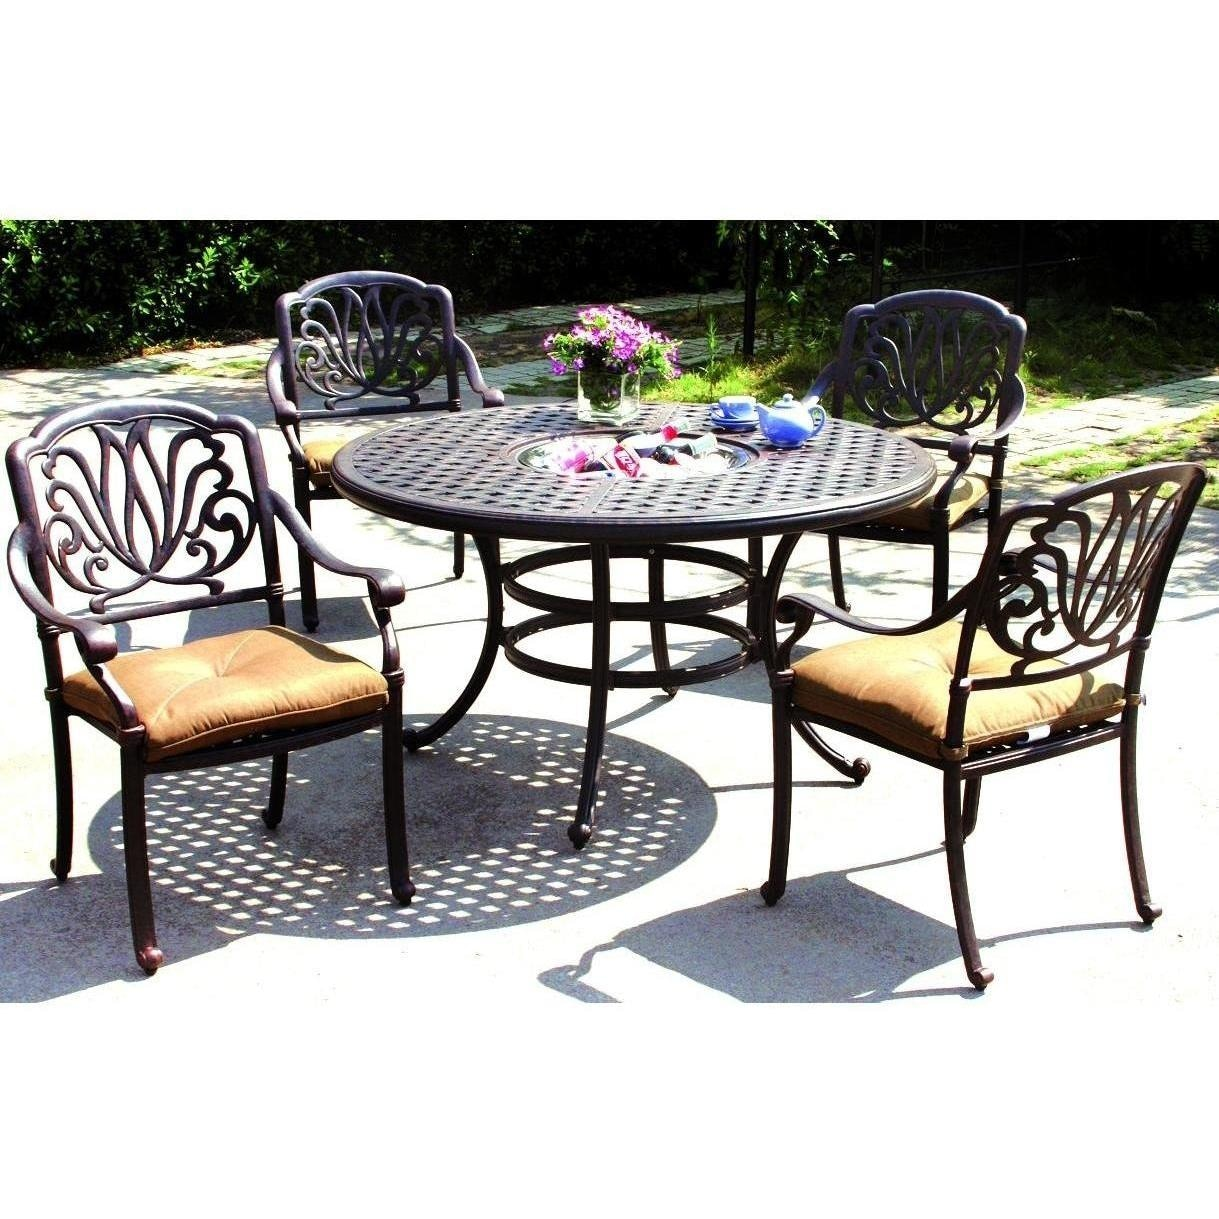 Darlee Elisabeth 5 Piece Cast Aluminum Patio Dining Set Dining Table With I